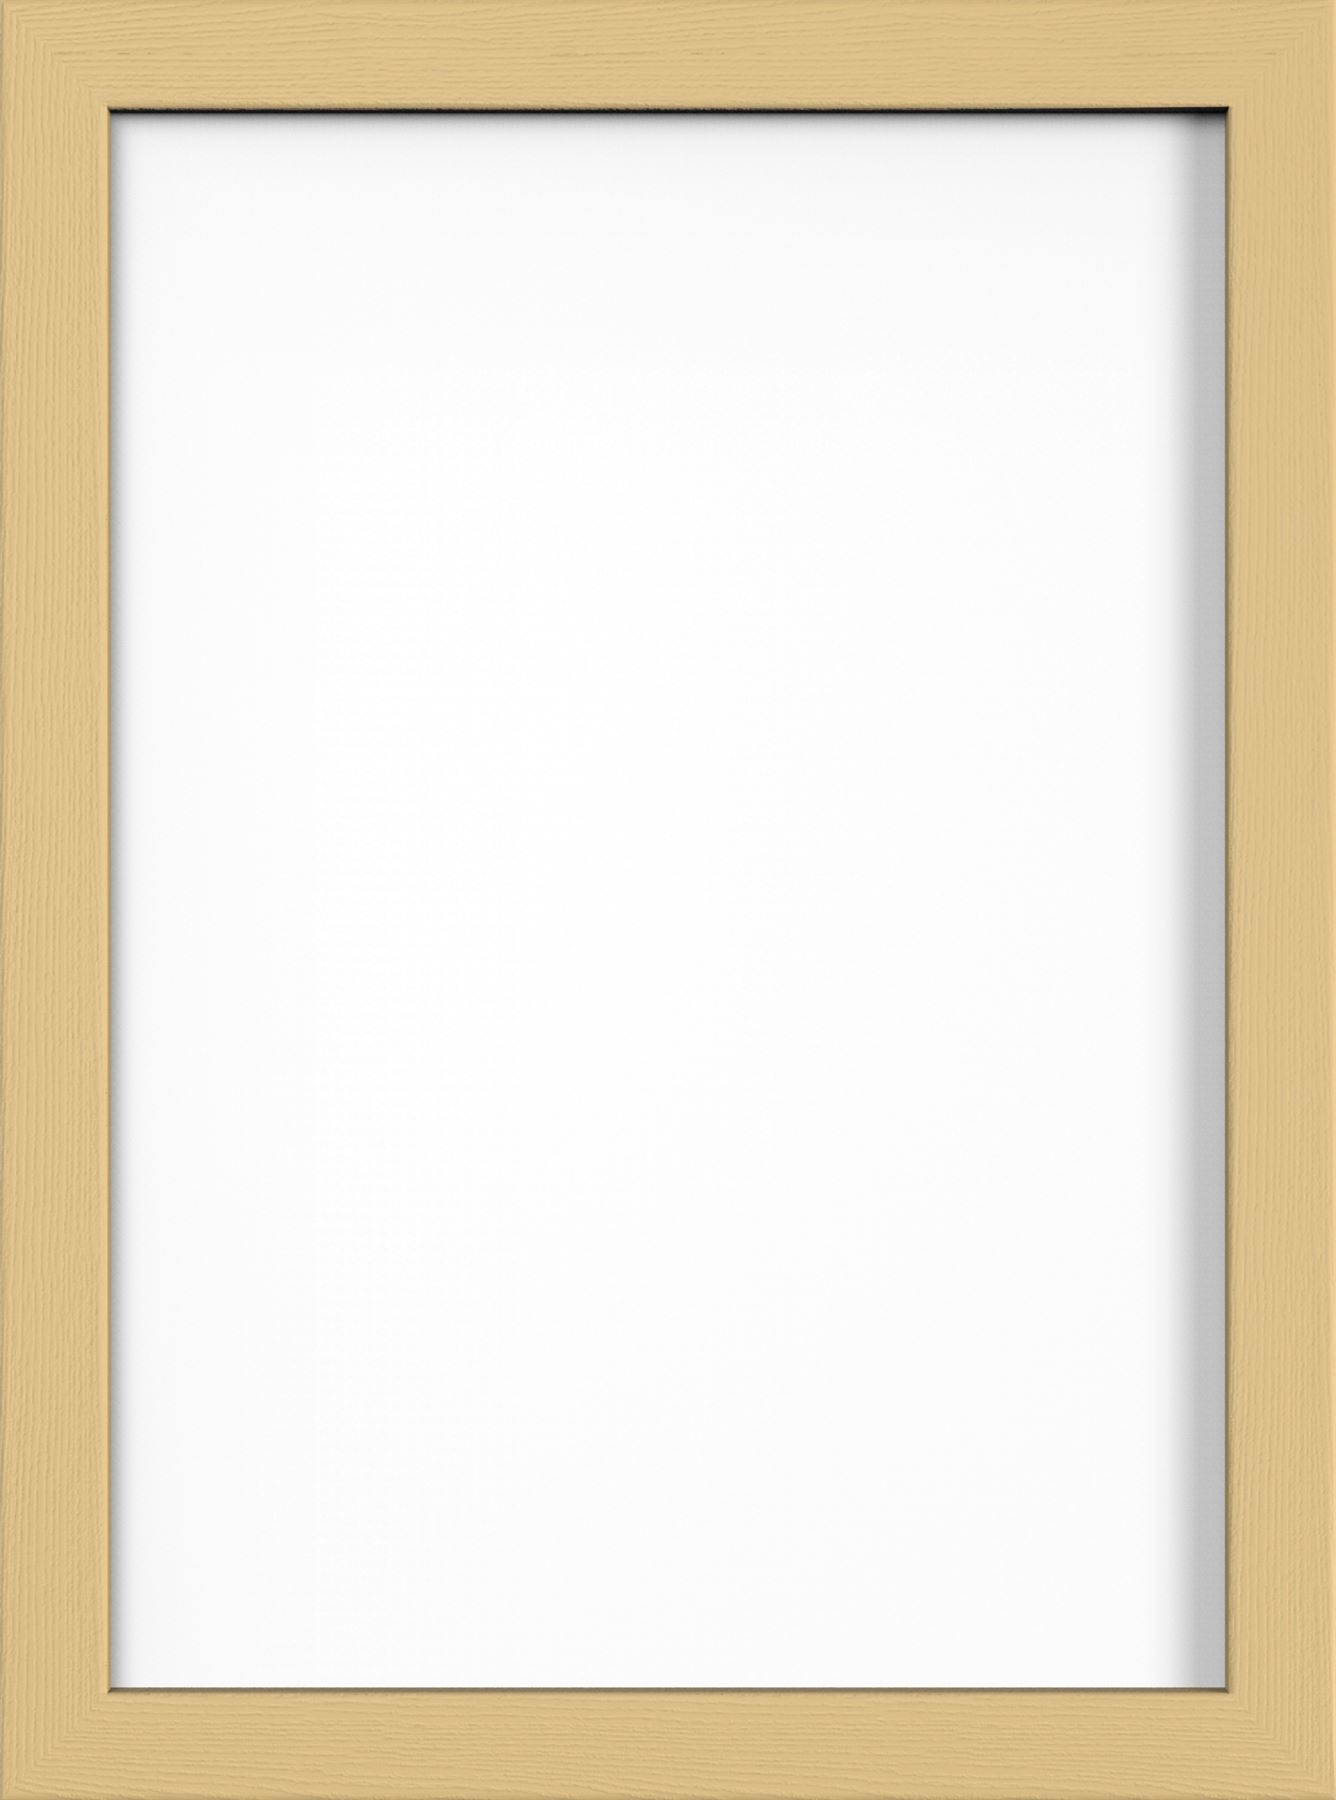 Gold Frame 24x36. Poster with the text 'Just love' | Typography ...